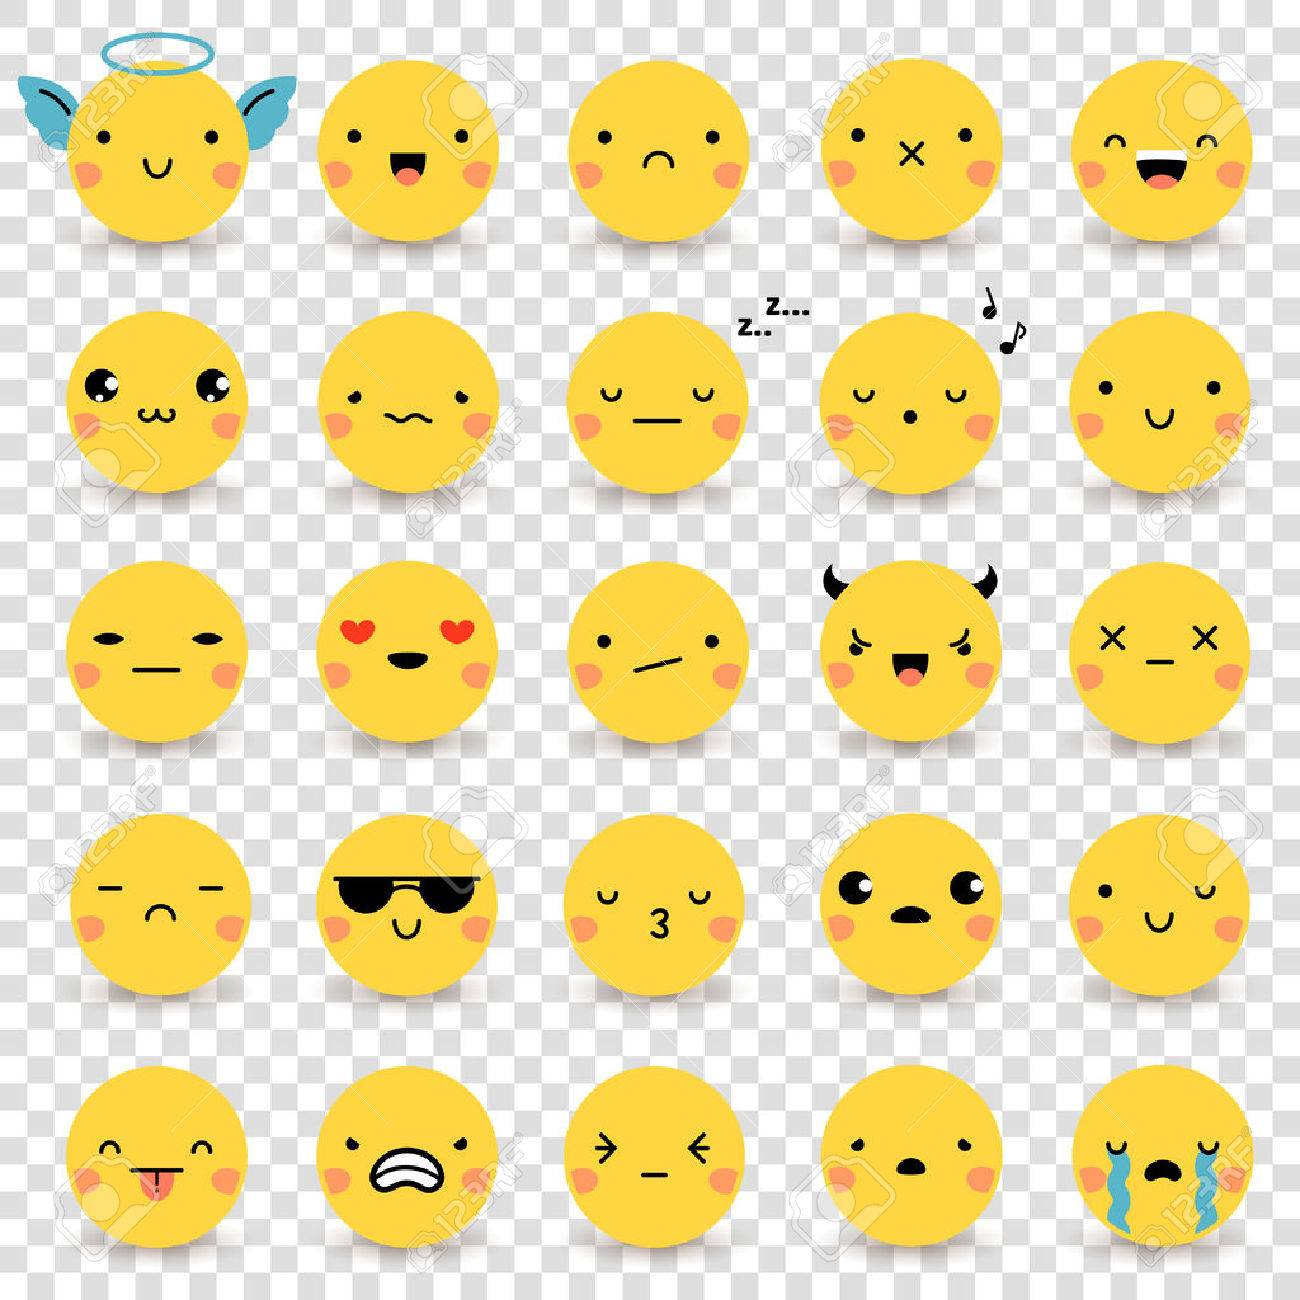 Twenty-five cute yellow flat emoticons set with various emotions isolated on transparent background vector illustrations - 59676179